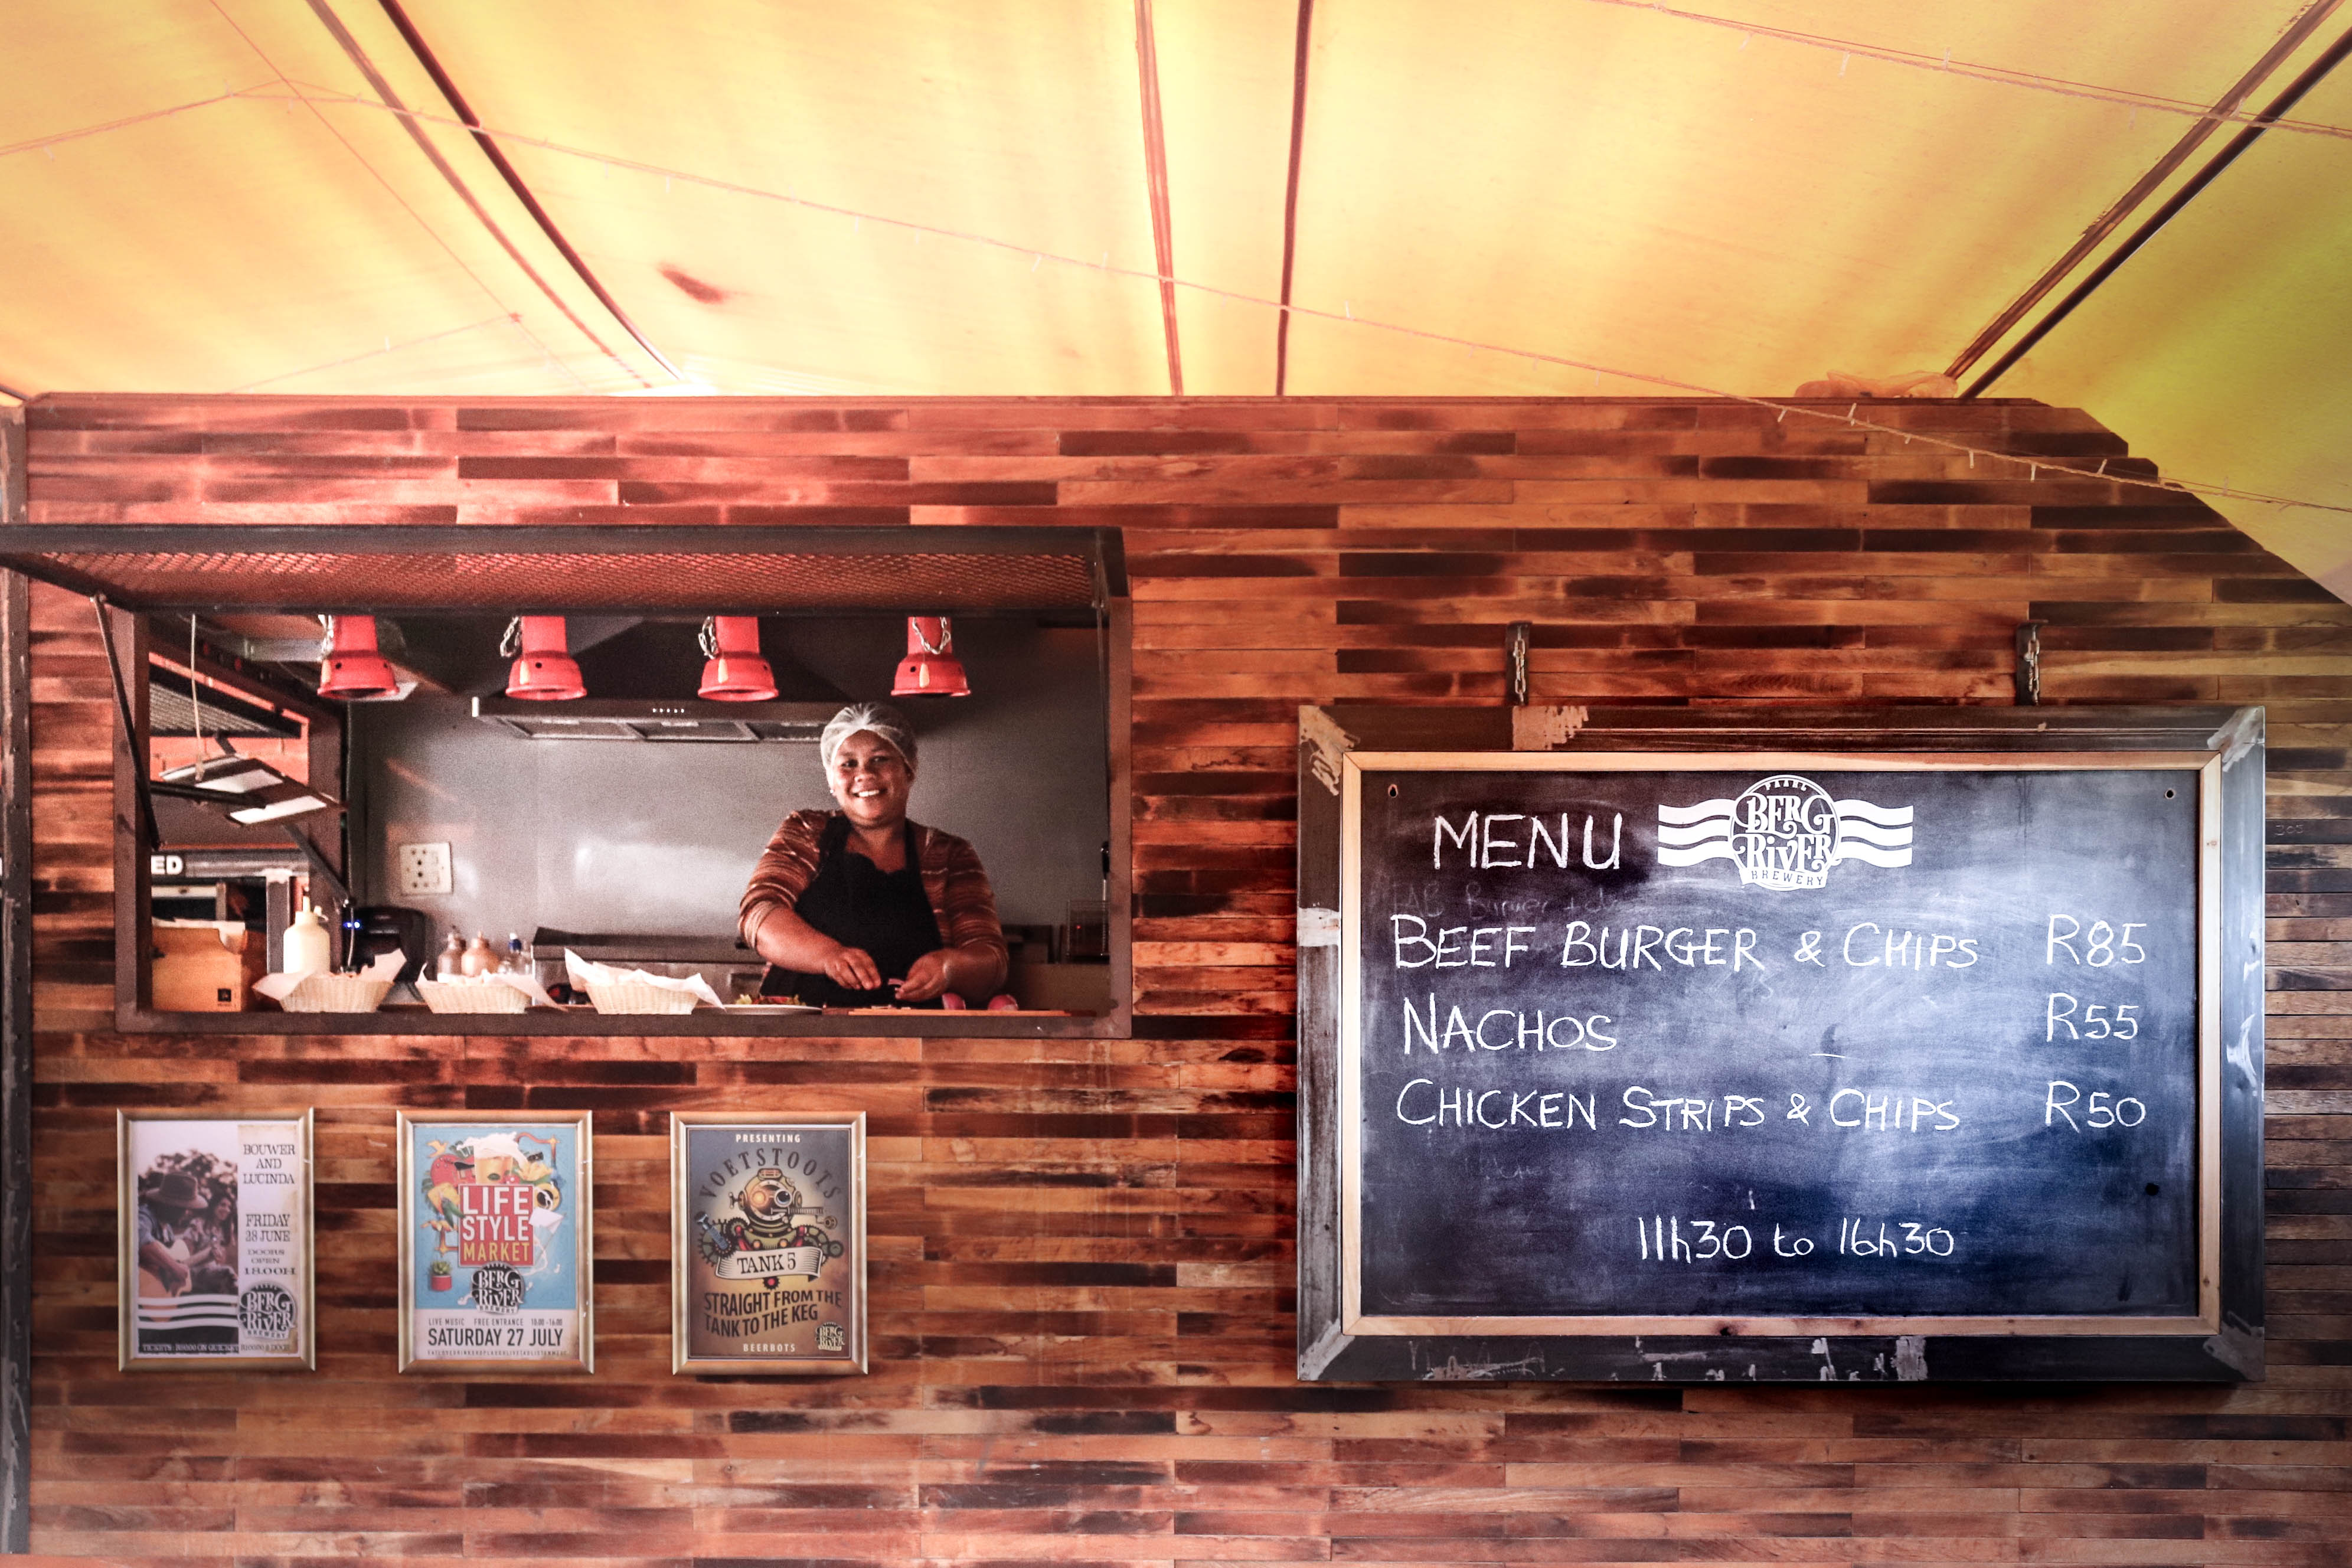 The Food Truck at Berg River Brewery in Paarl is cooking up a storm with friendly service, their ever-popular and delicious pizzas, scrumptious nachos, mouth-watering beefy burgers, delectable chicken strips. Open Tuesday - Saturday.